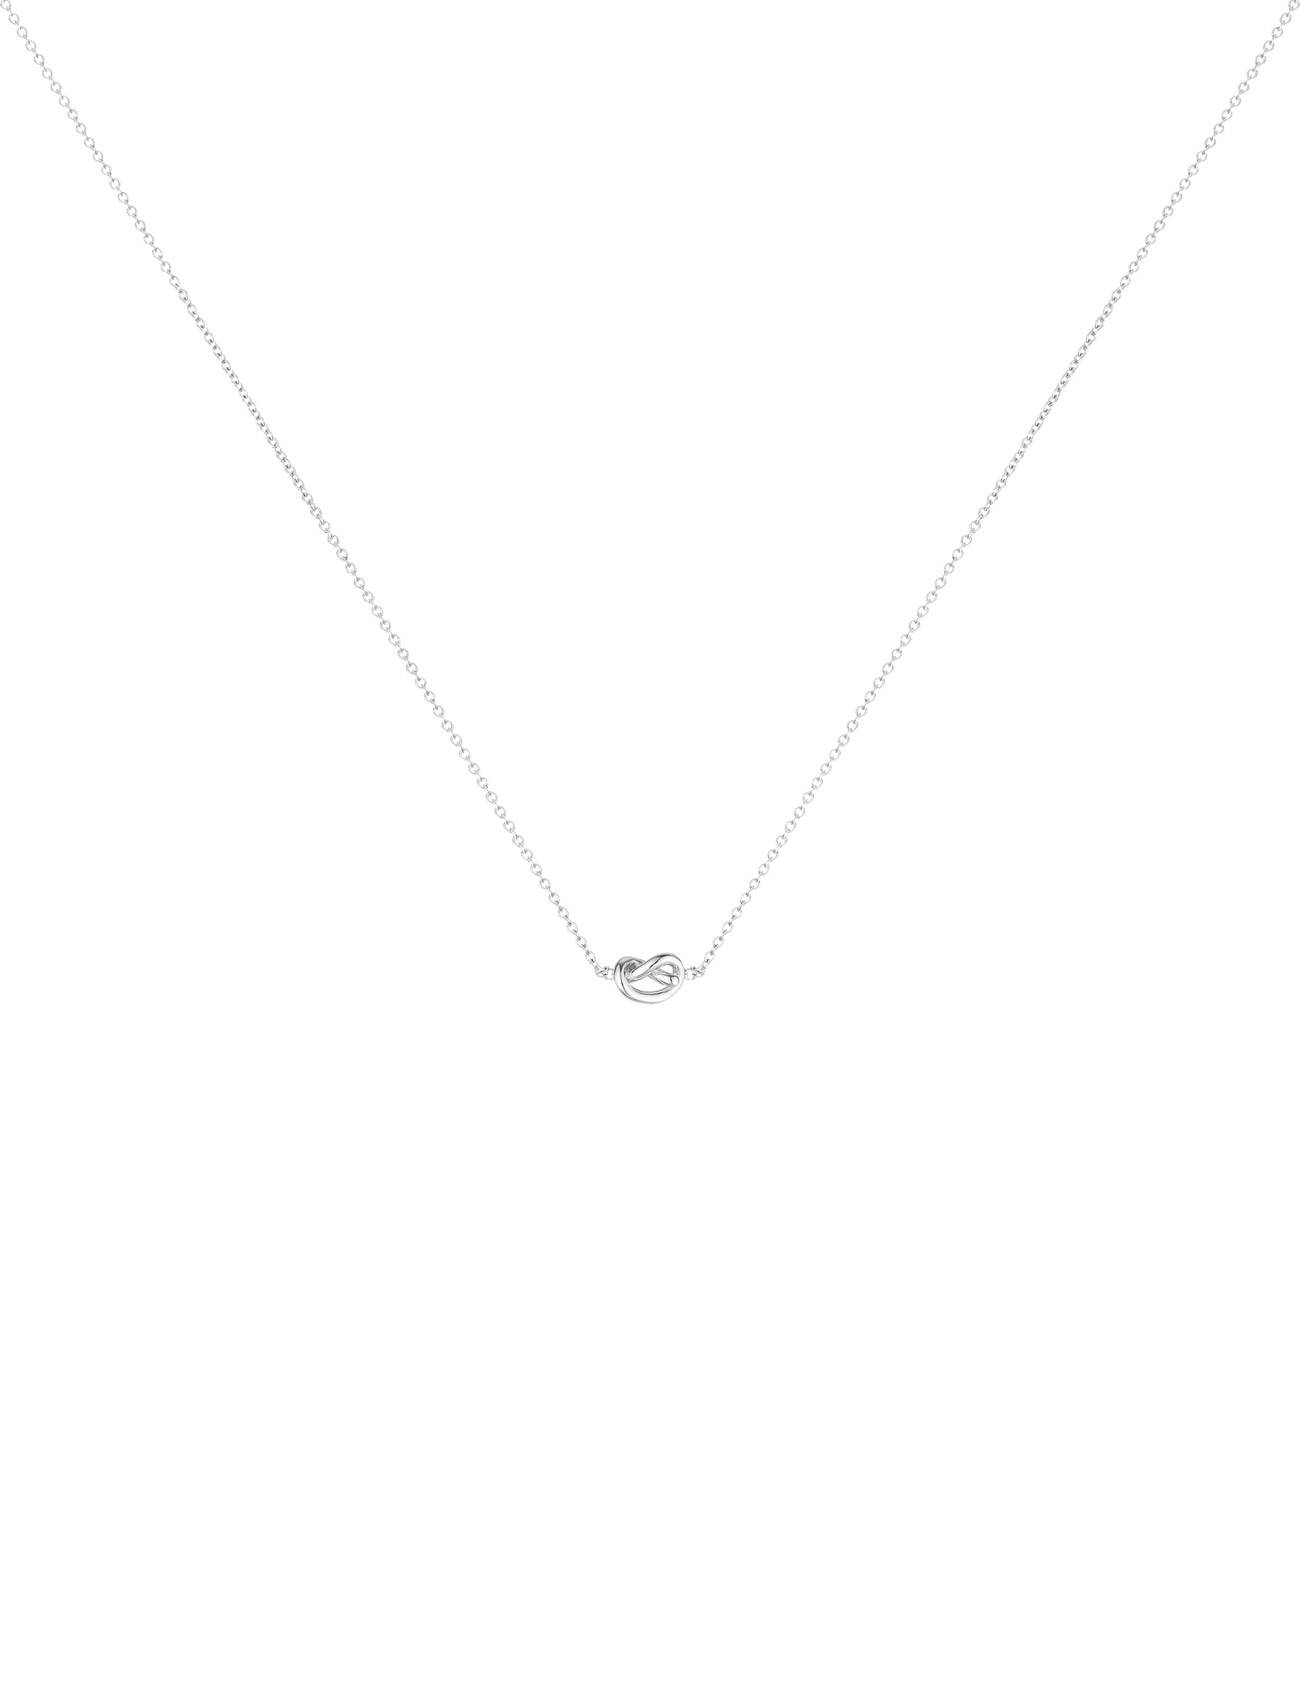 SOPHIE by SOPHIE Knot Necklace